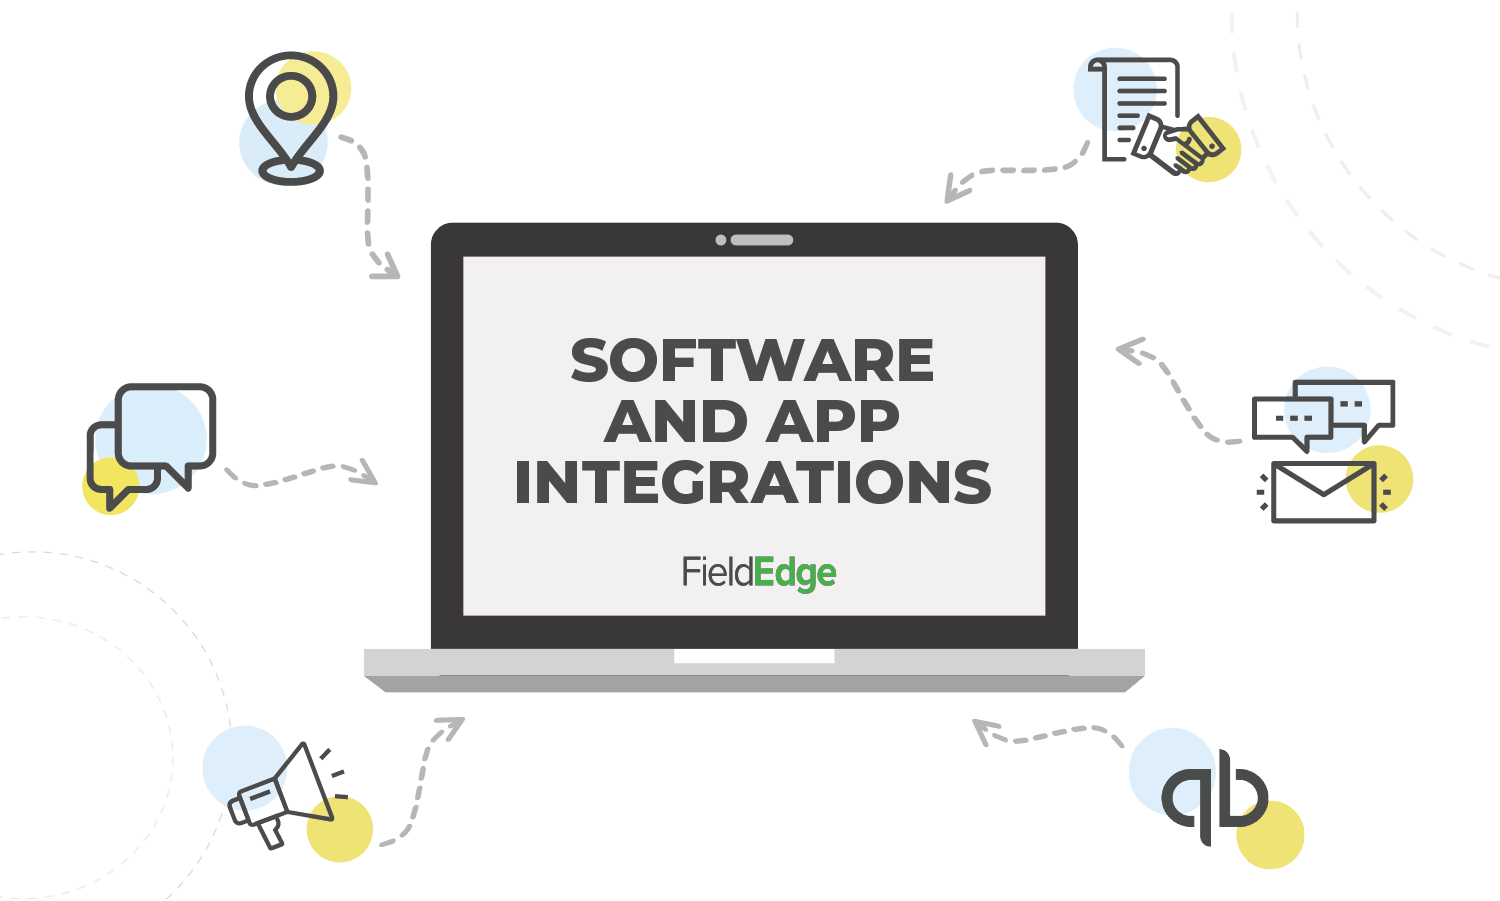 Graphic of software integration icons pointing to a laptop